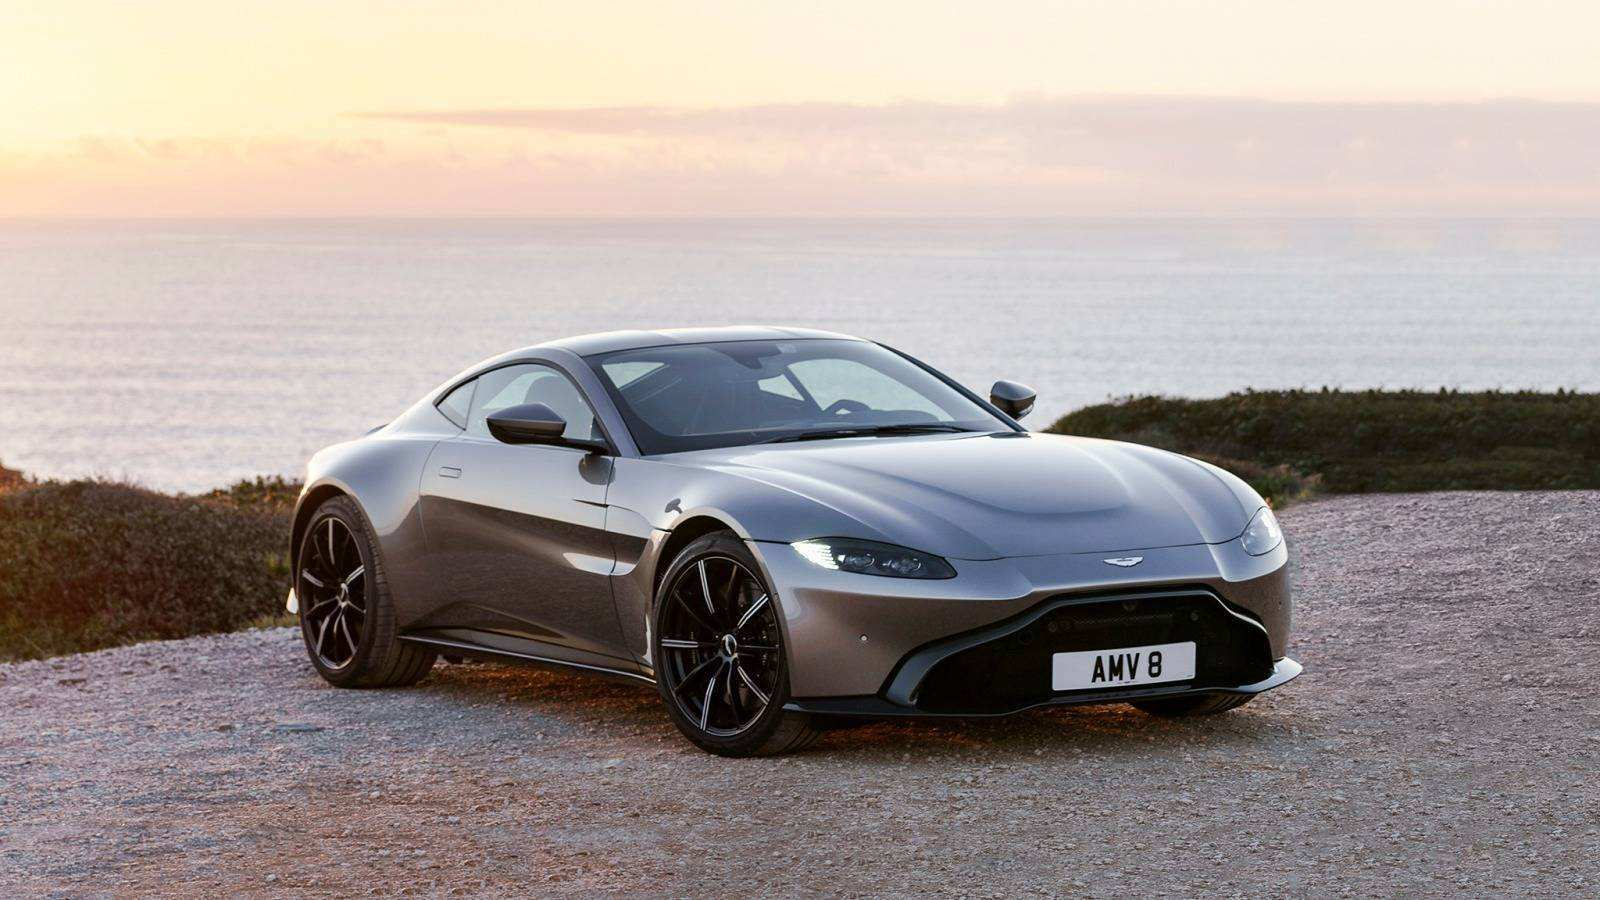 Aston Martin DB Wallpapers HD Desktop and Mobile